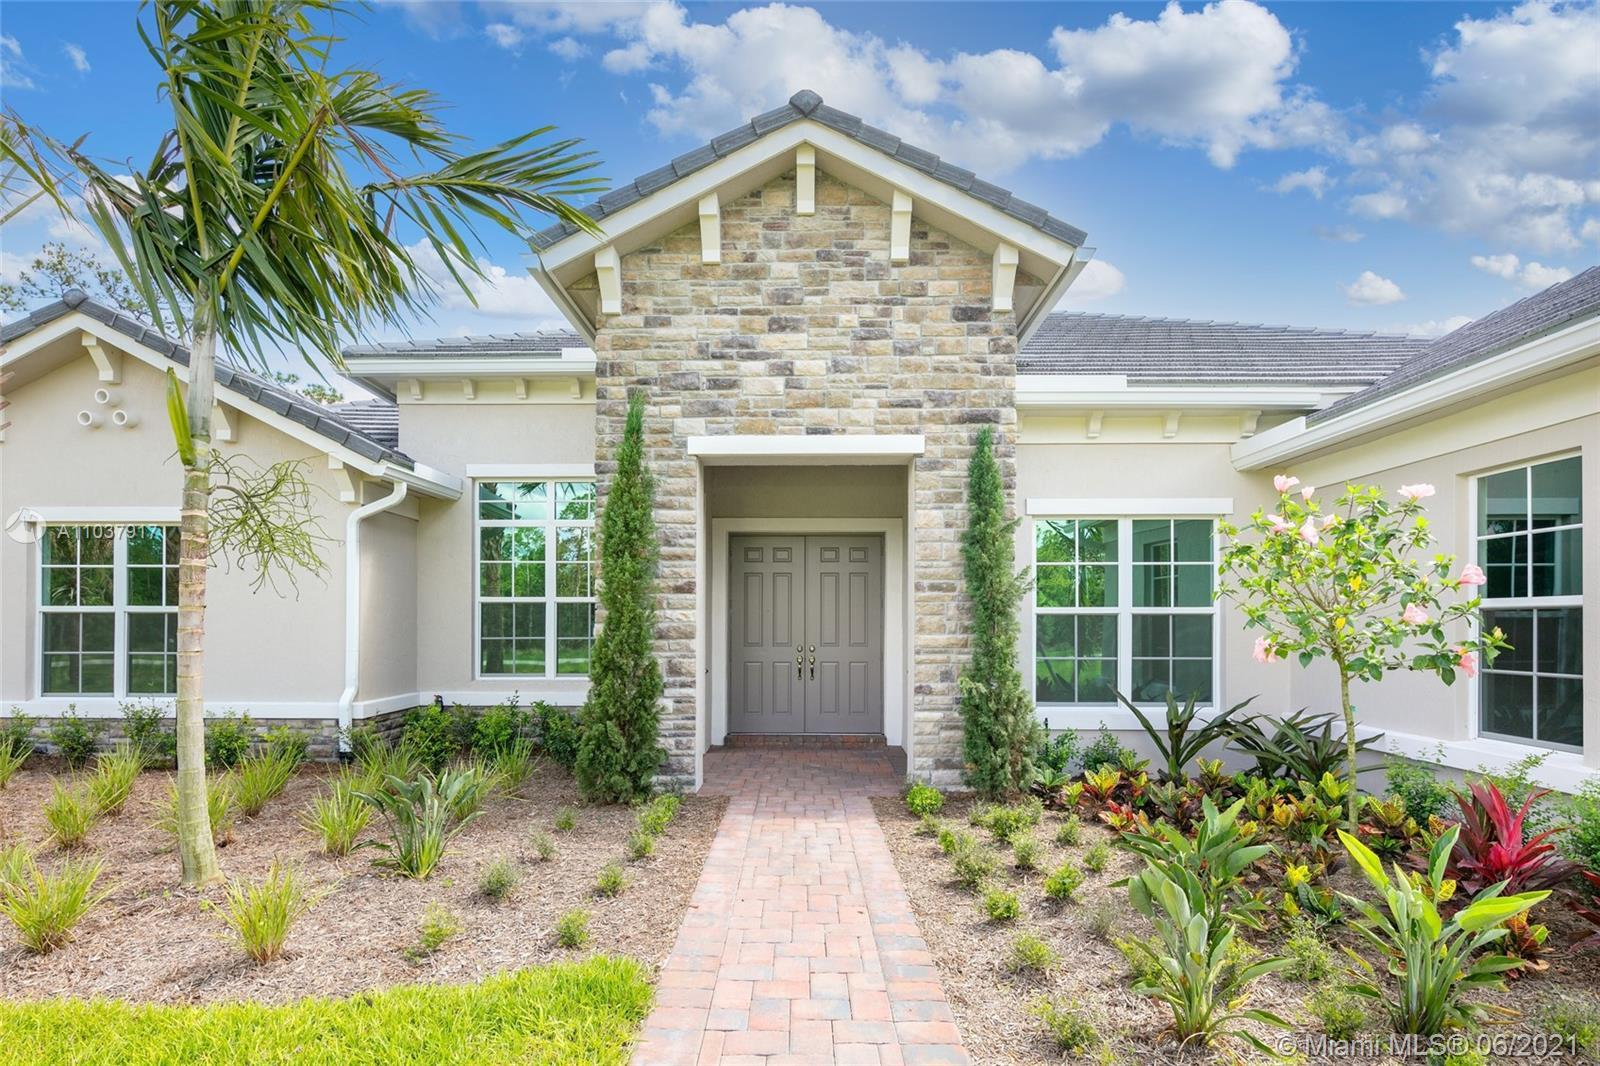 Brand new construction in the exclusive Reynold's Ranch gated community. This premium lot sits on a